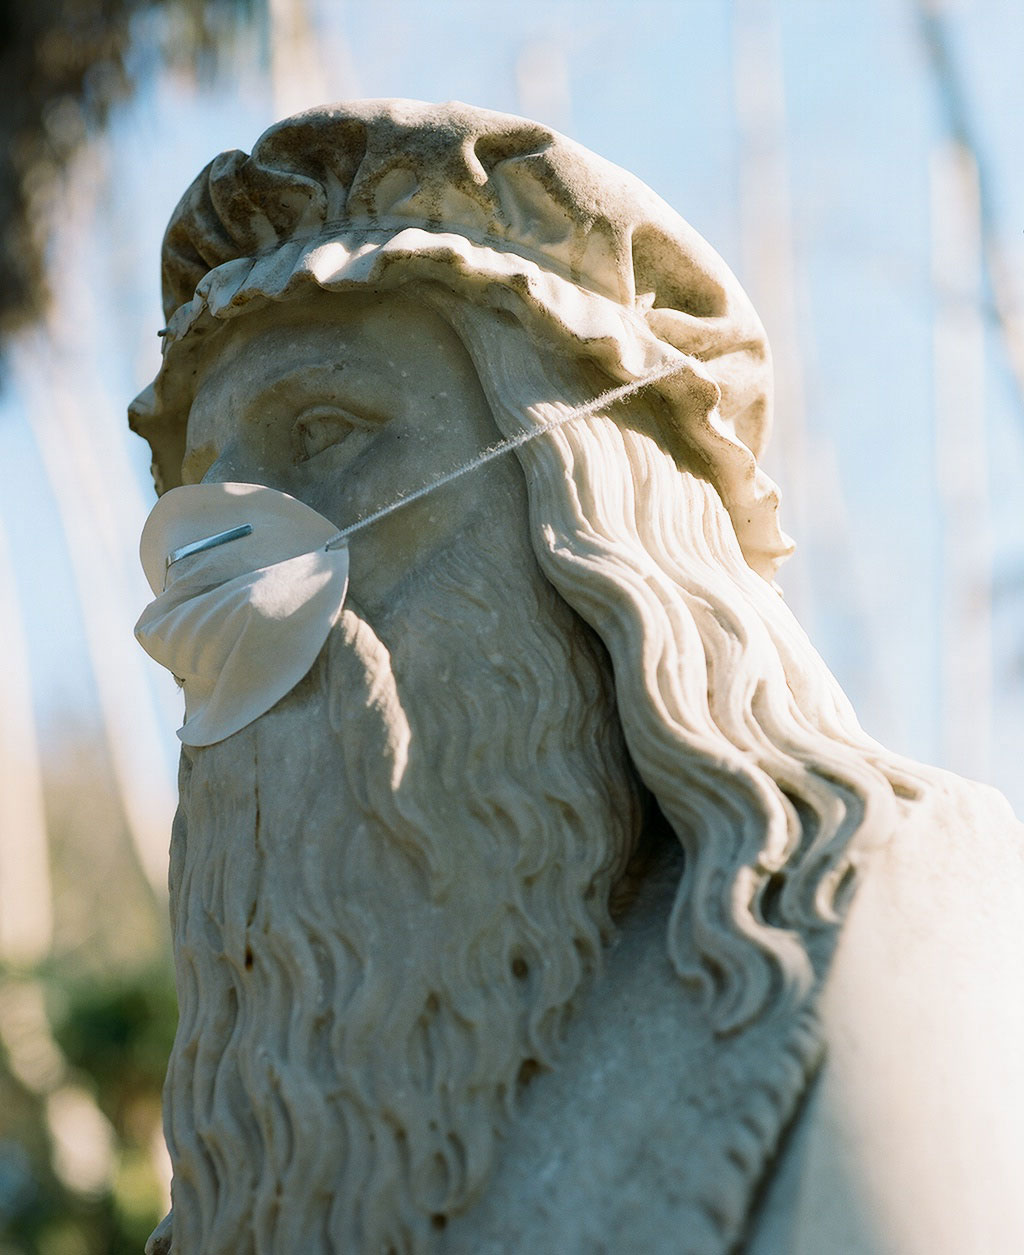 Bust of painter and engineer Leonardo da Vinci (1452-1519) at Villa Borghese gardens, Rome. Photo © Federico Pestilli.